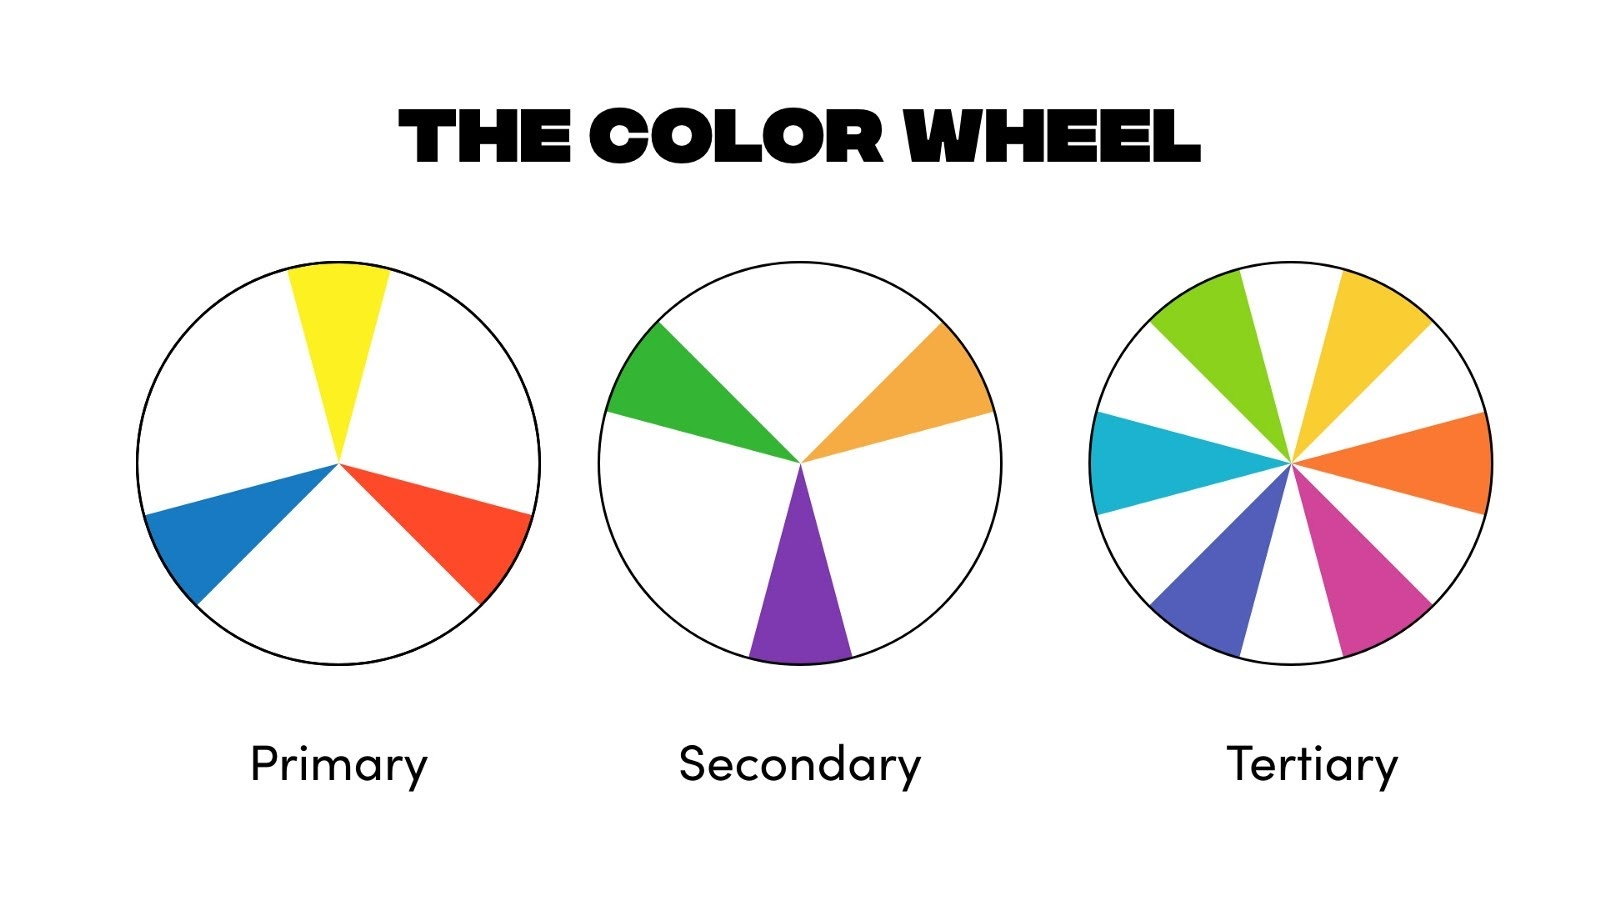 Visualization of the color wheel